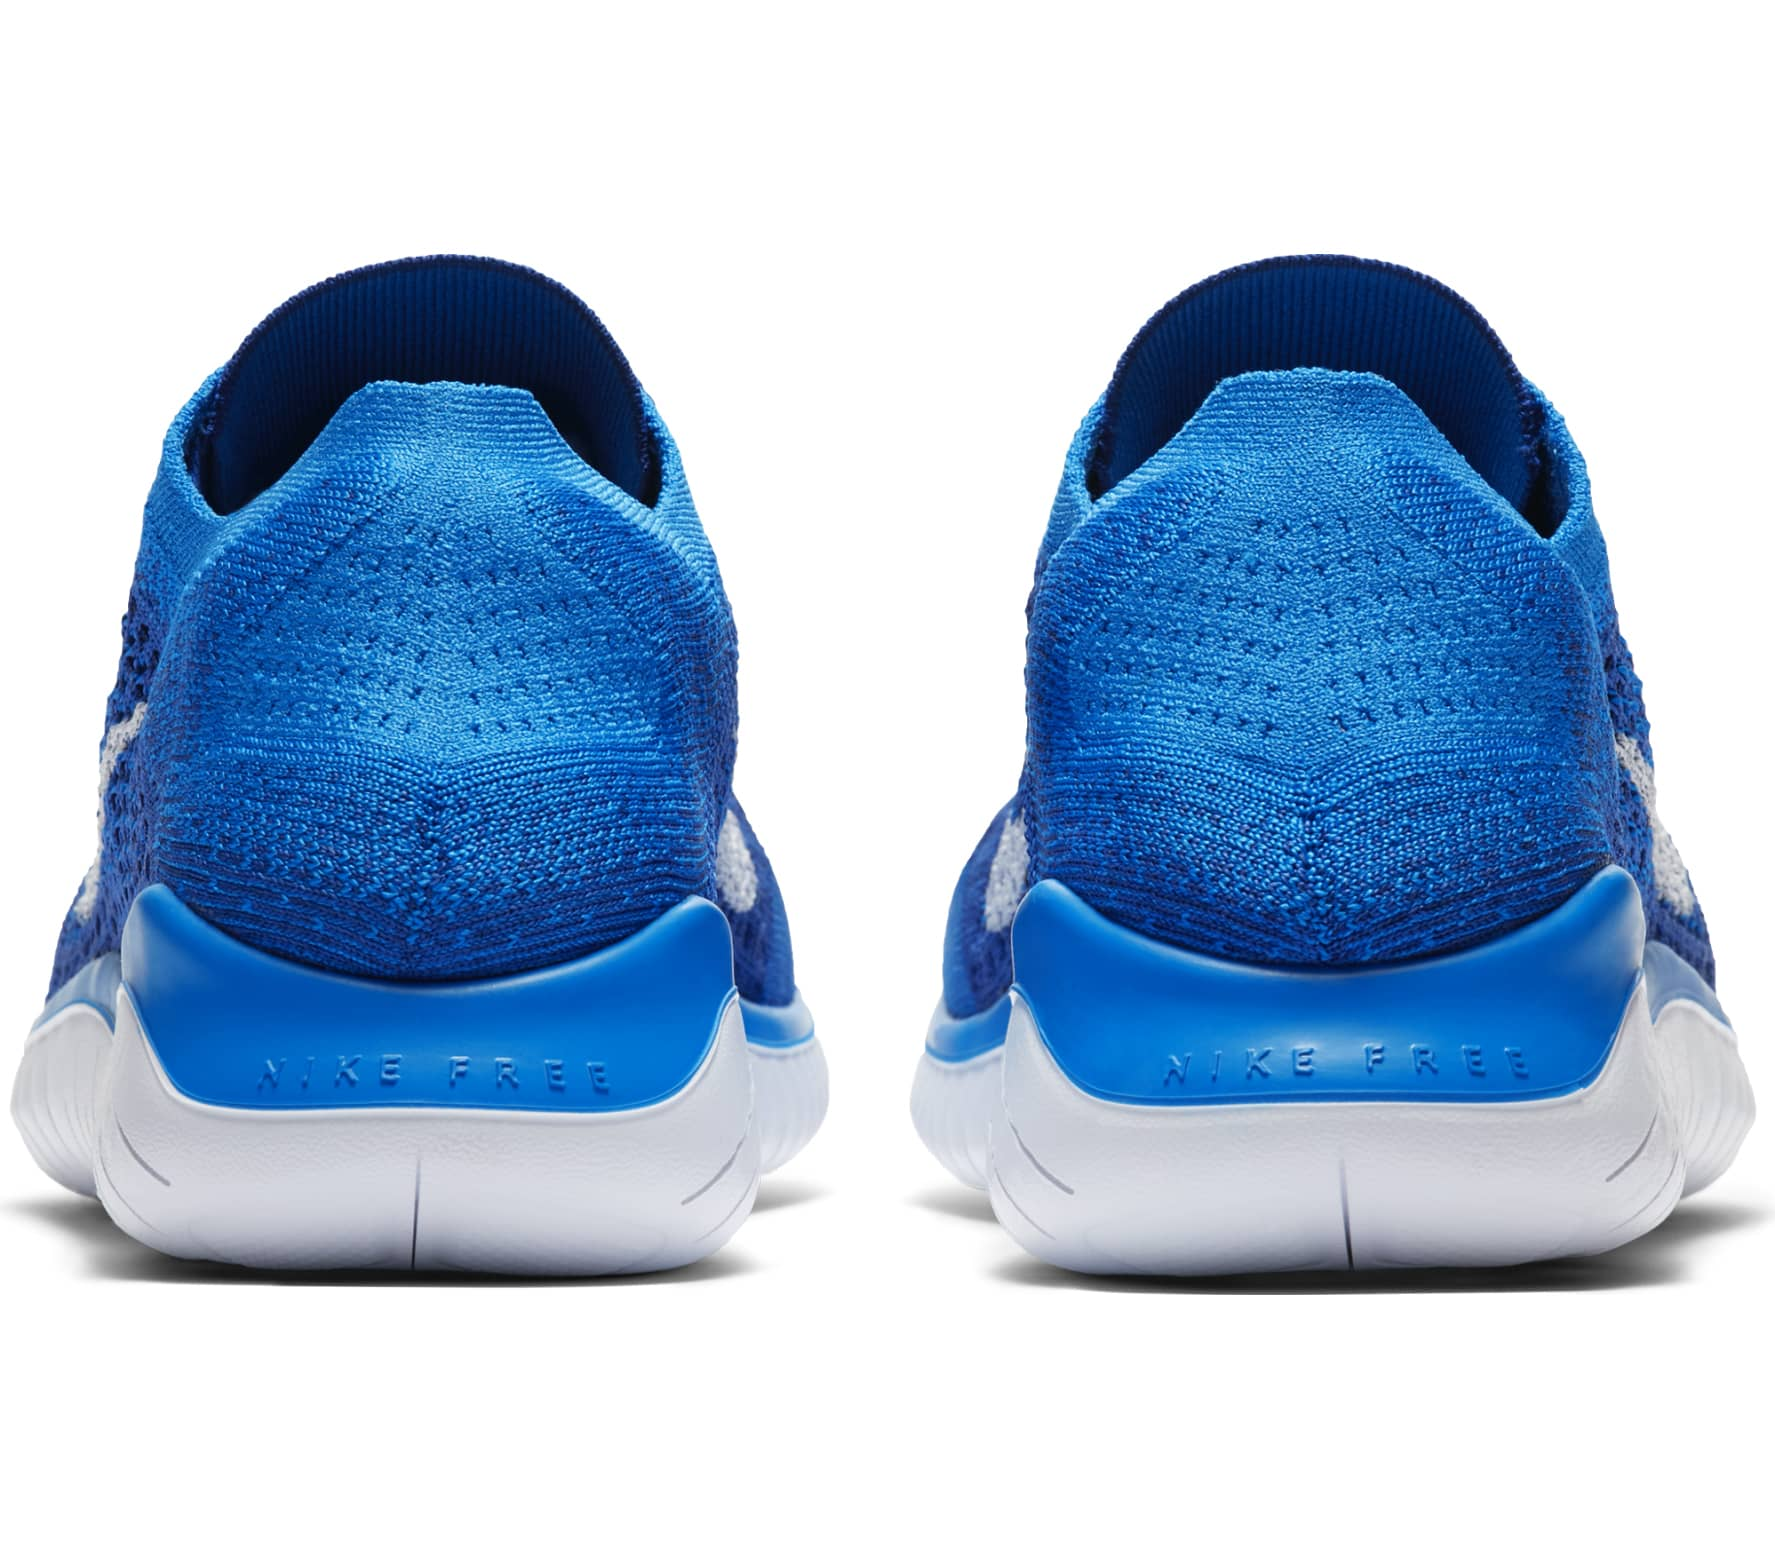 separation shoes 20237 fef47 Nike - Free RN Flyknit 2018 men s running shoes (blue)